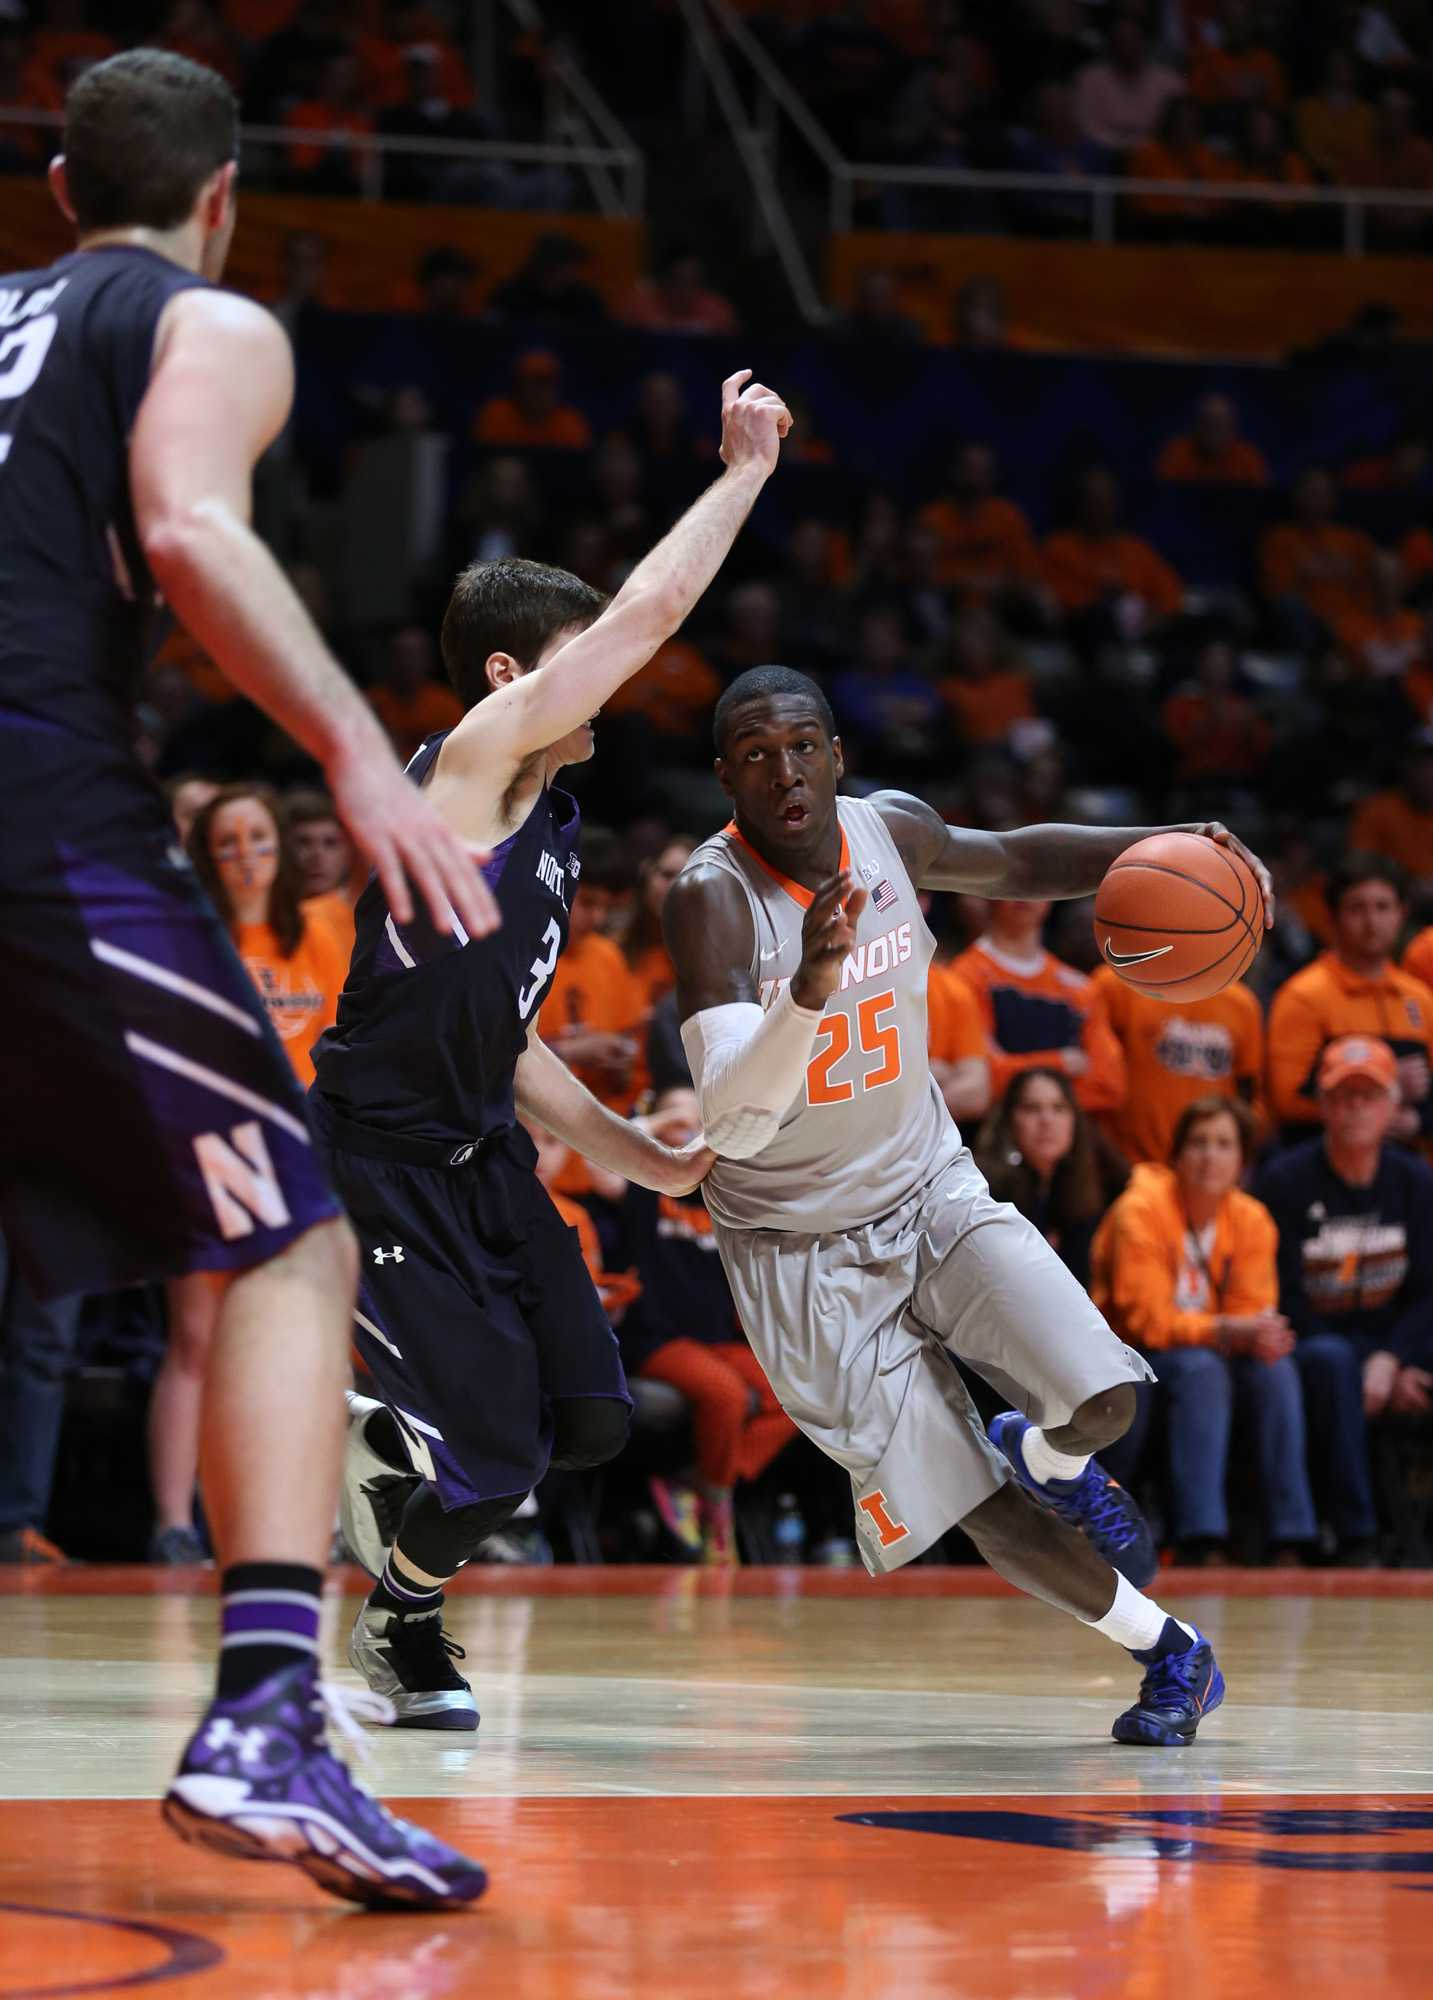 Brenton Tse The Daily Illini